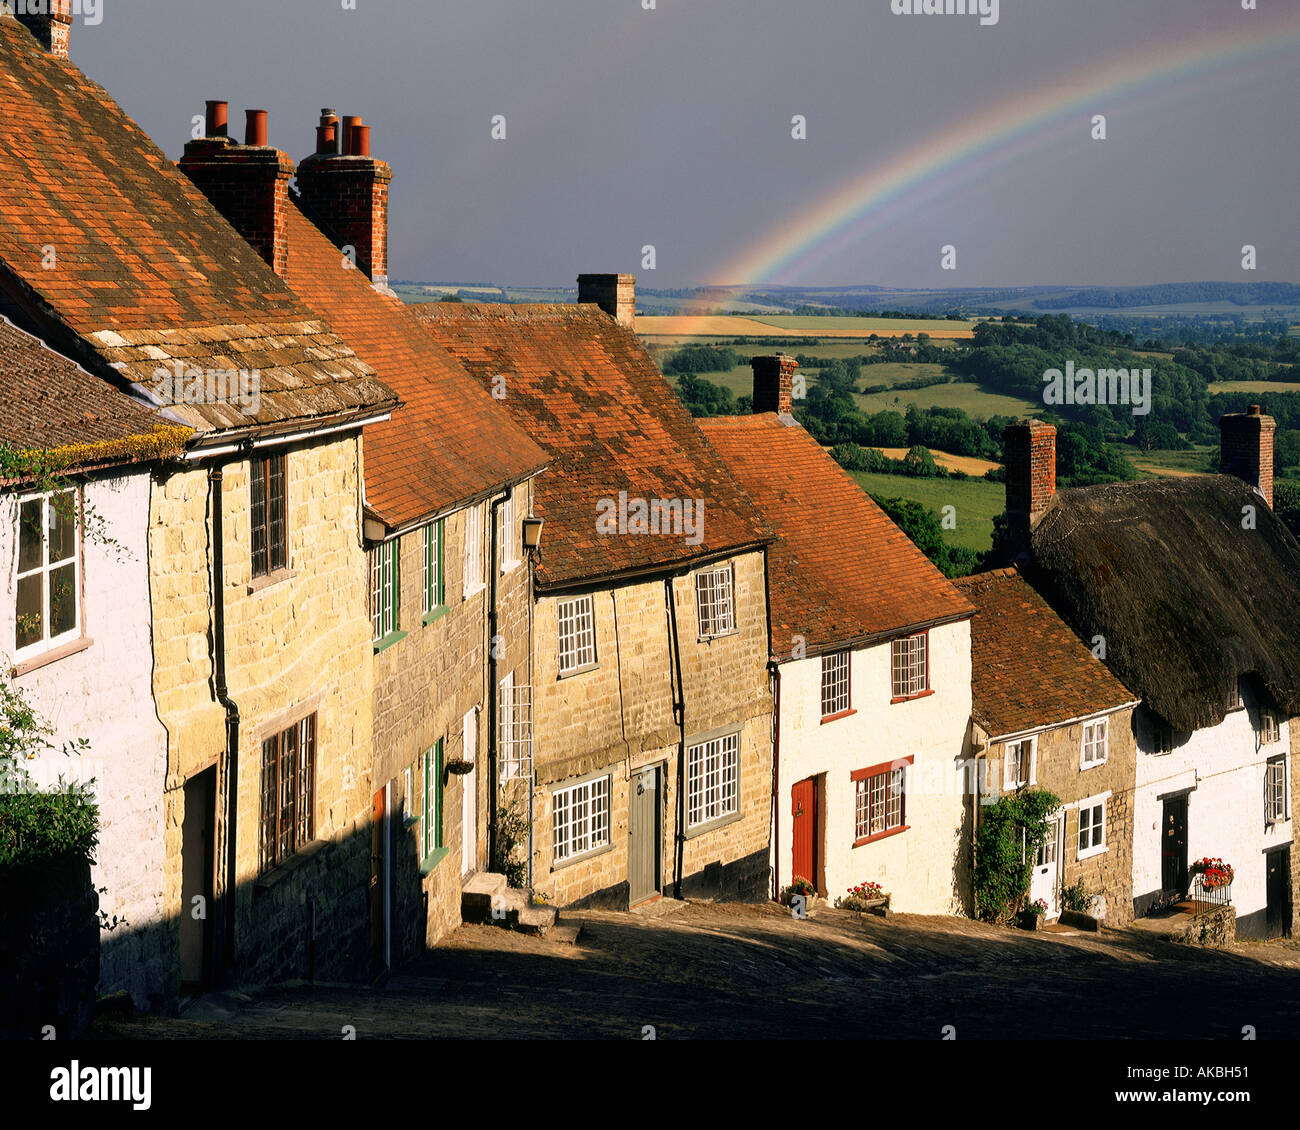 GB - DORSET: Gold Hill at Shaftesbury - Stock Image